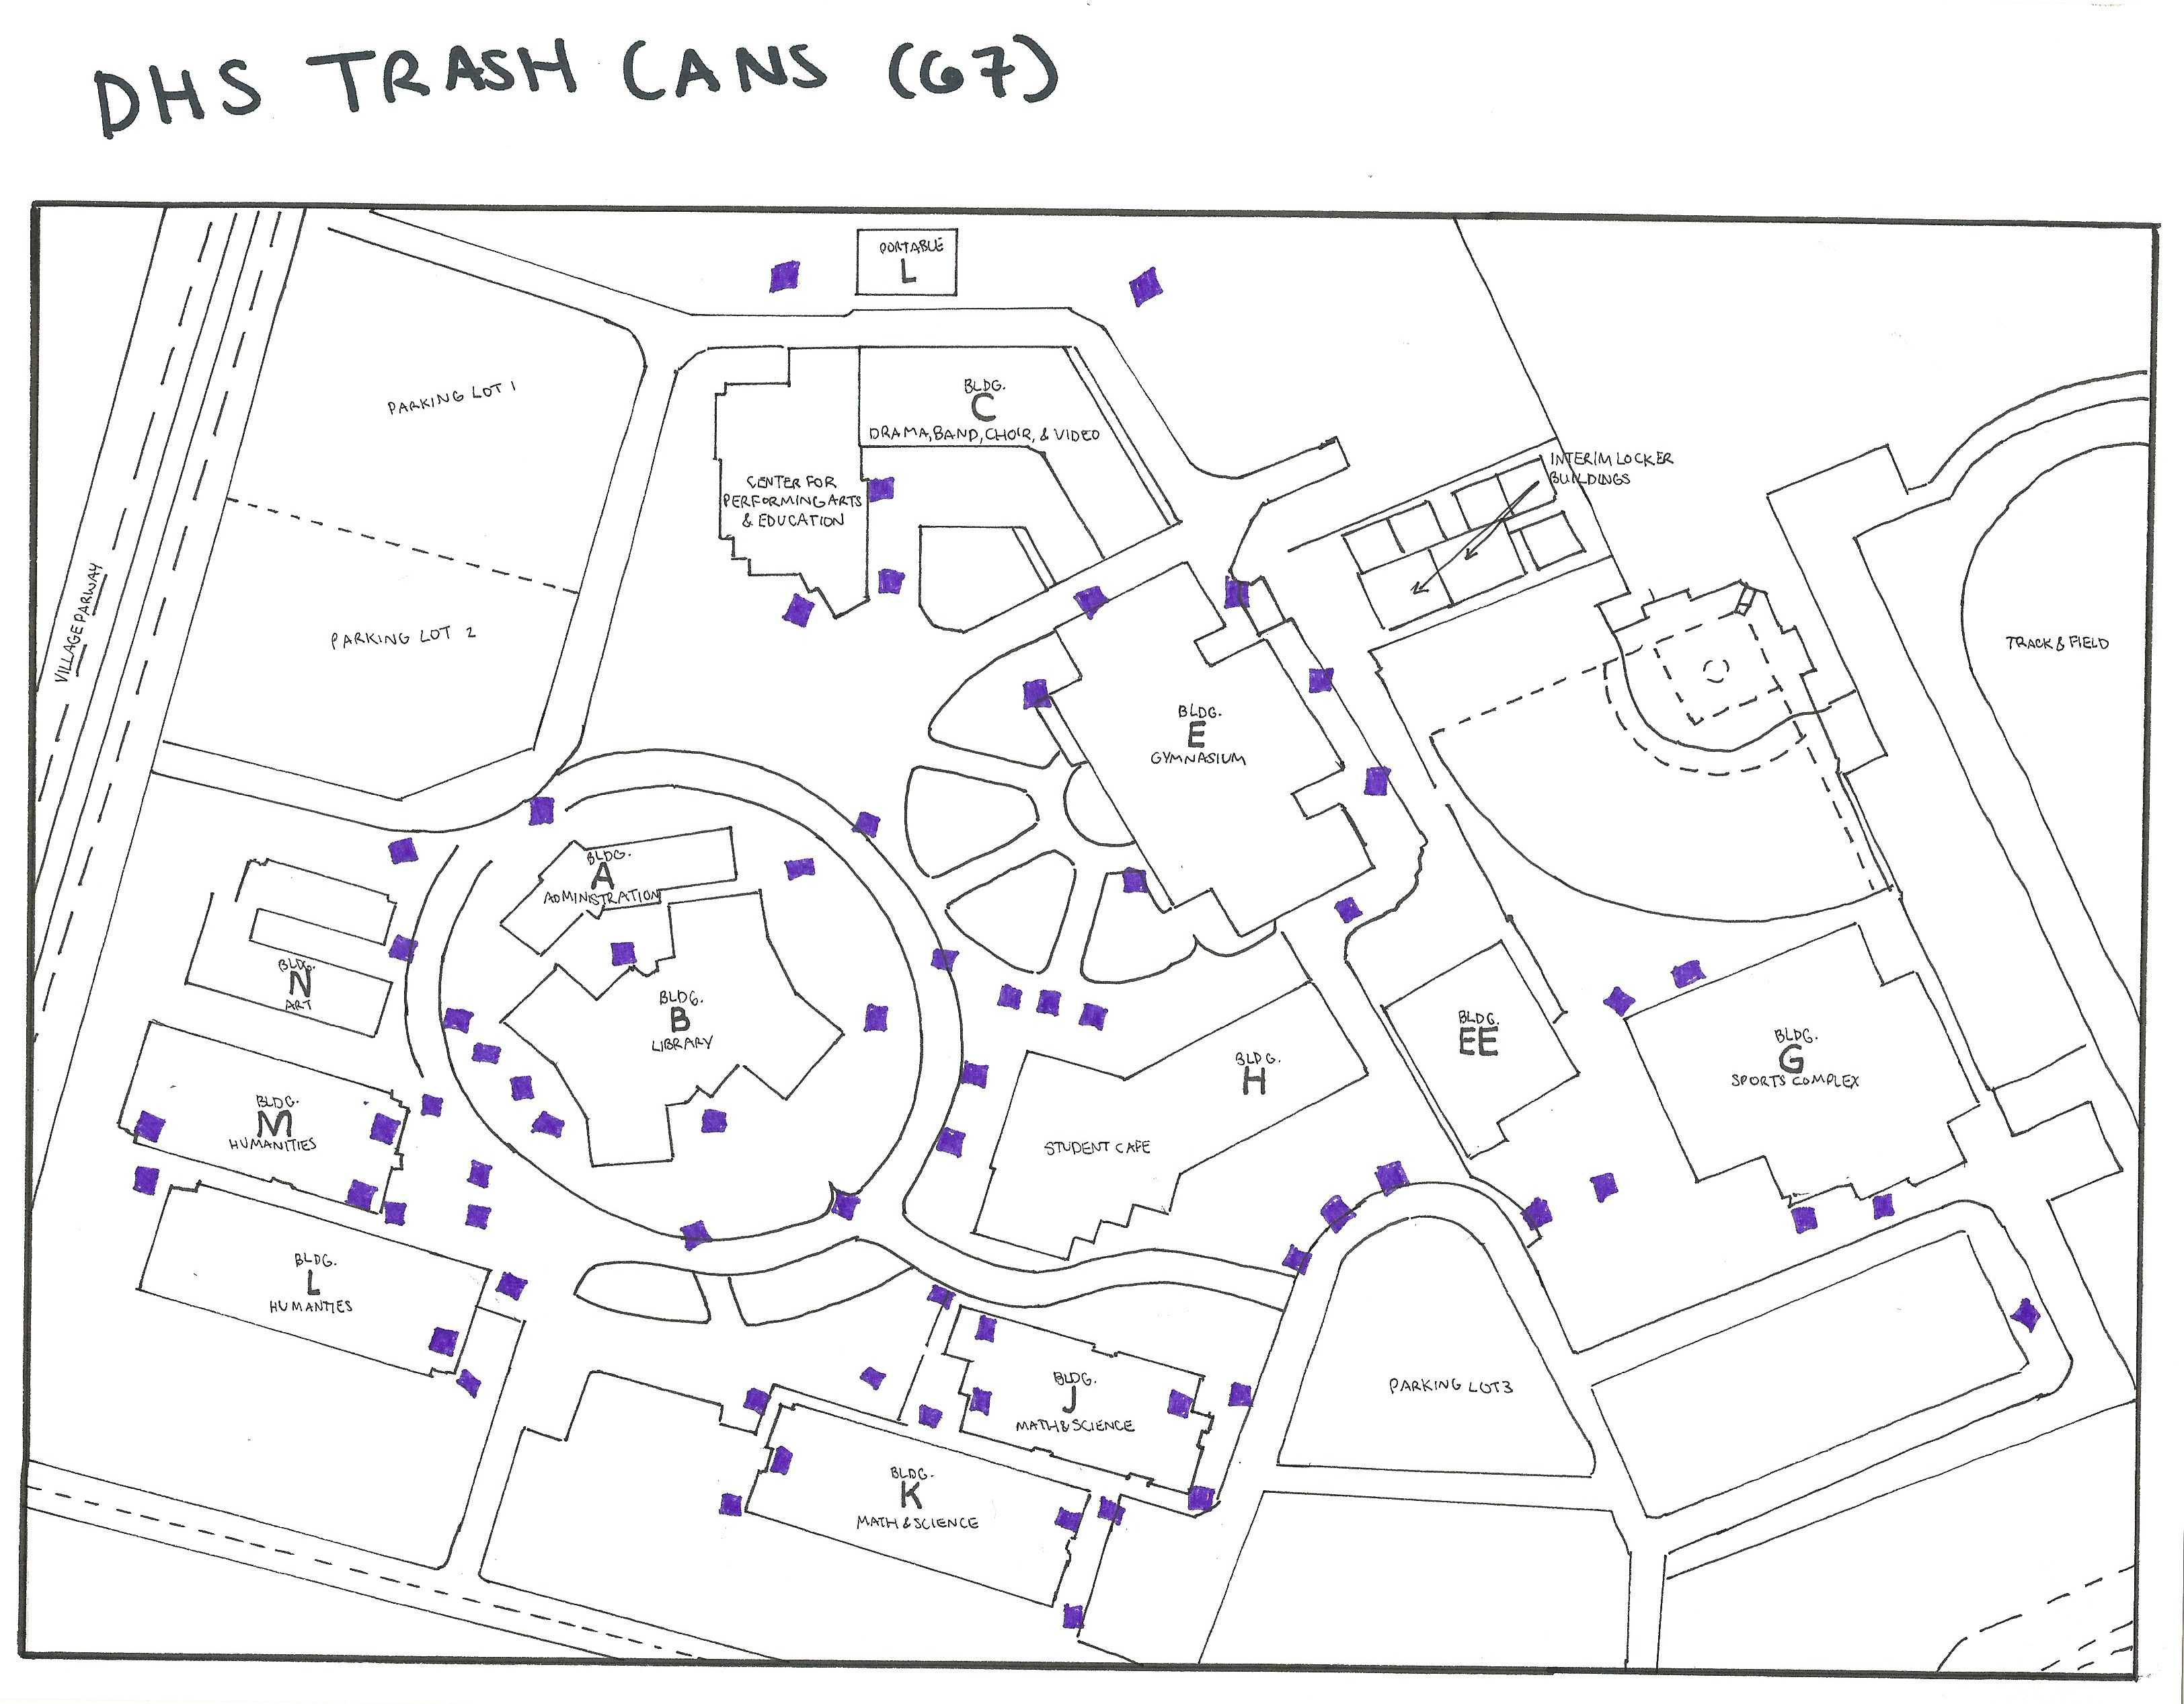 Above is a map of all the trash cans at DHS. Before you throw away part of your lunch, check and see how much food is already thrown away.